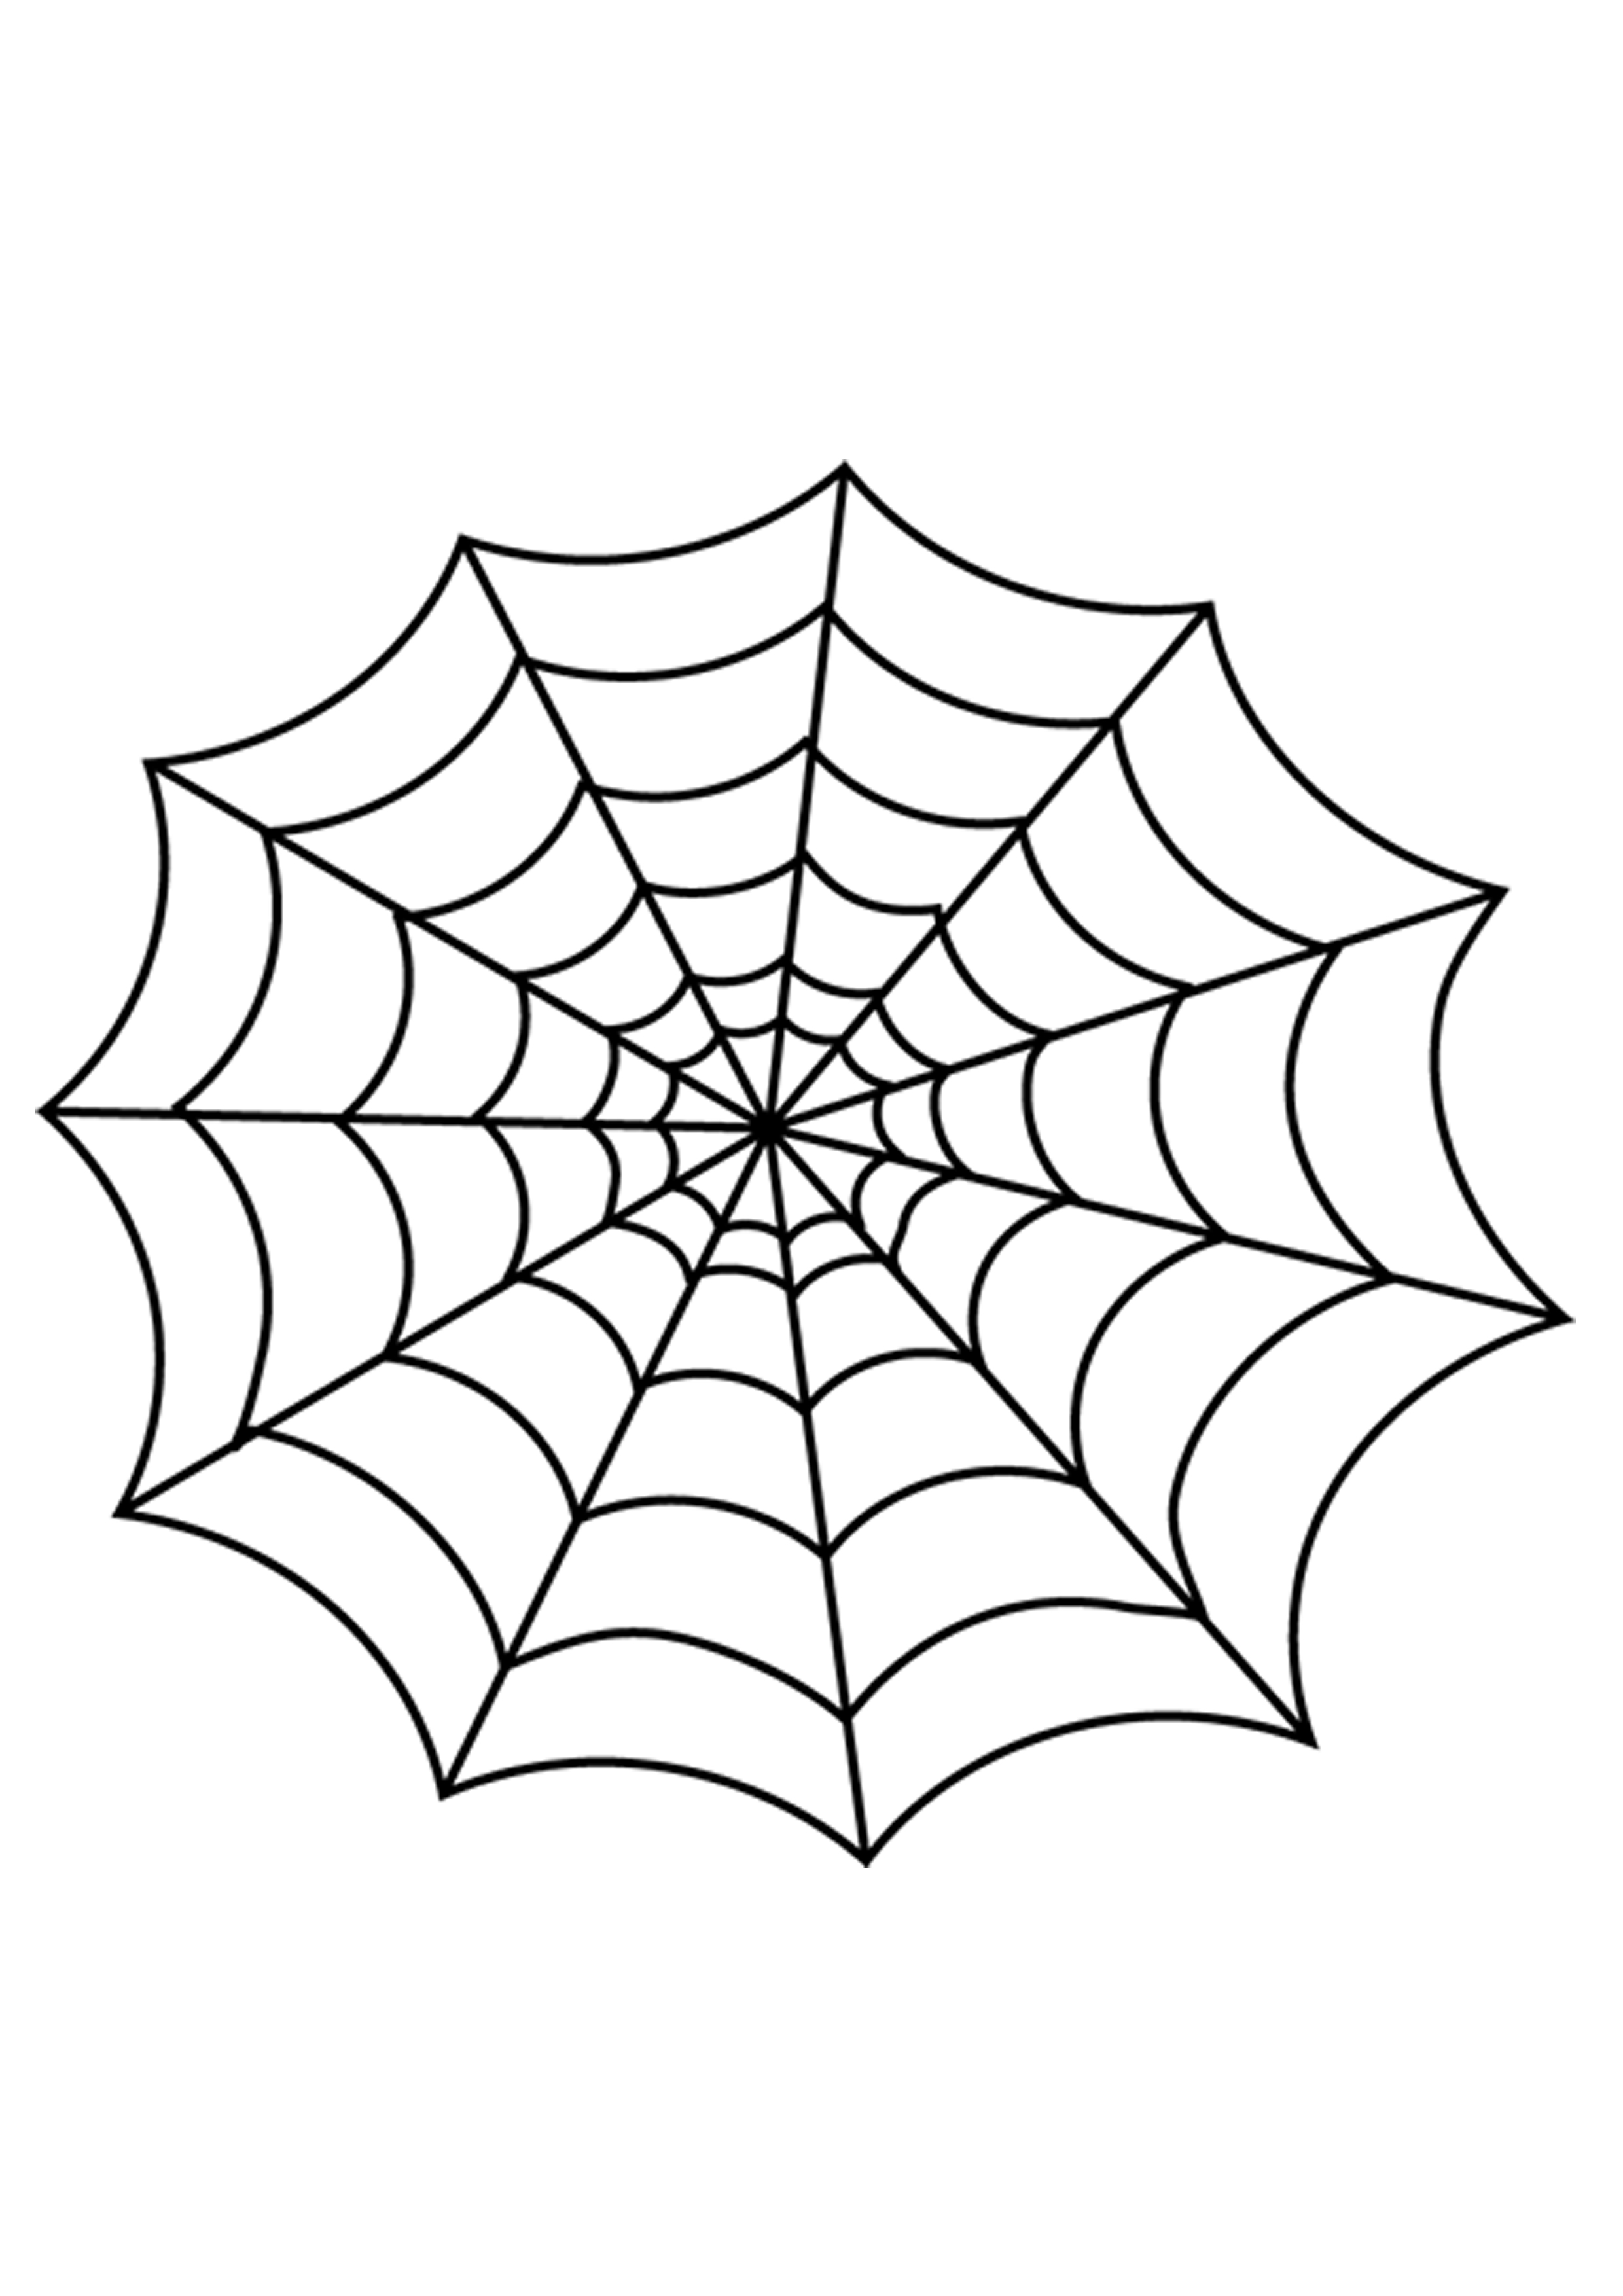 How To Make Glitter Glue Spider Web Halloween Decorations Spider Web Color Template